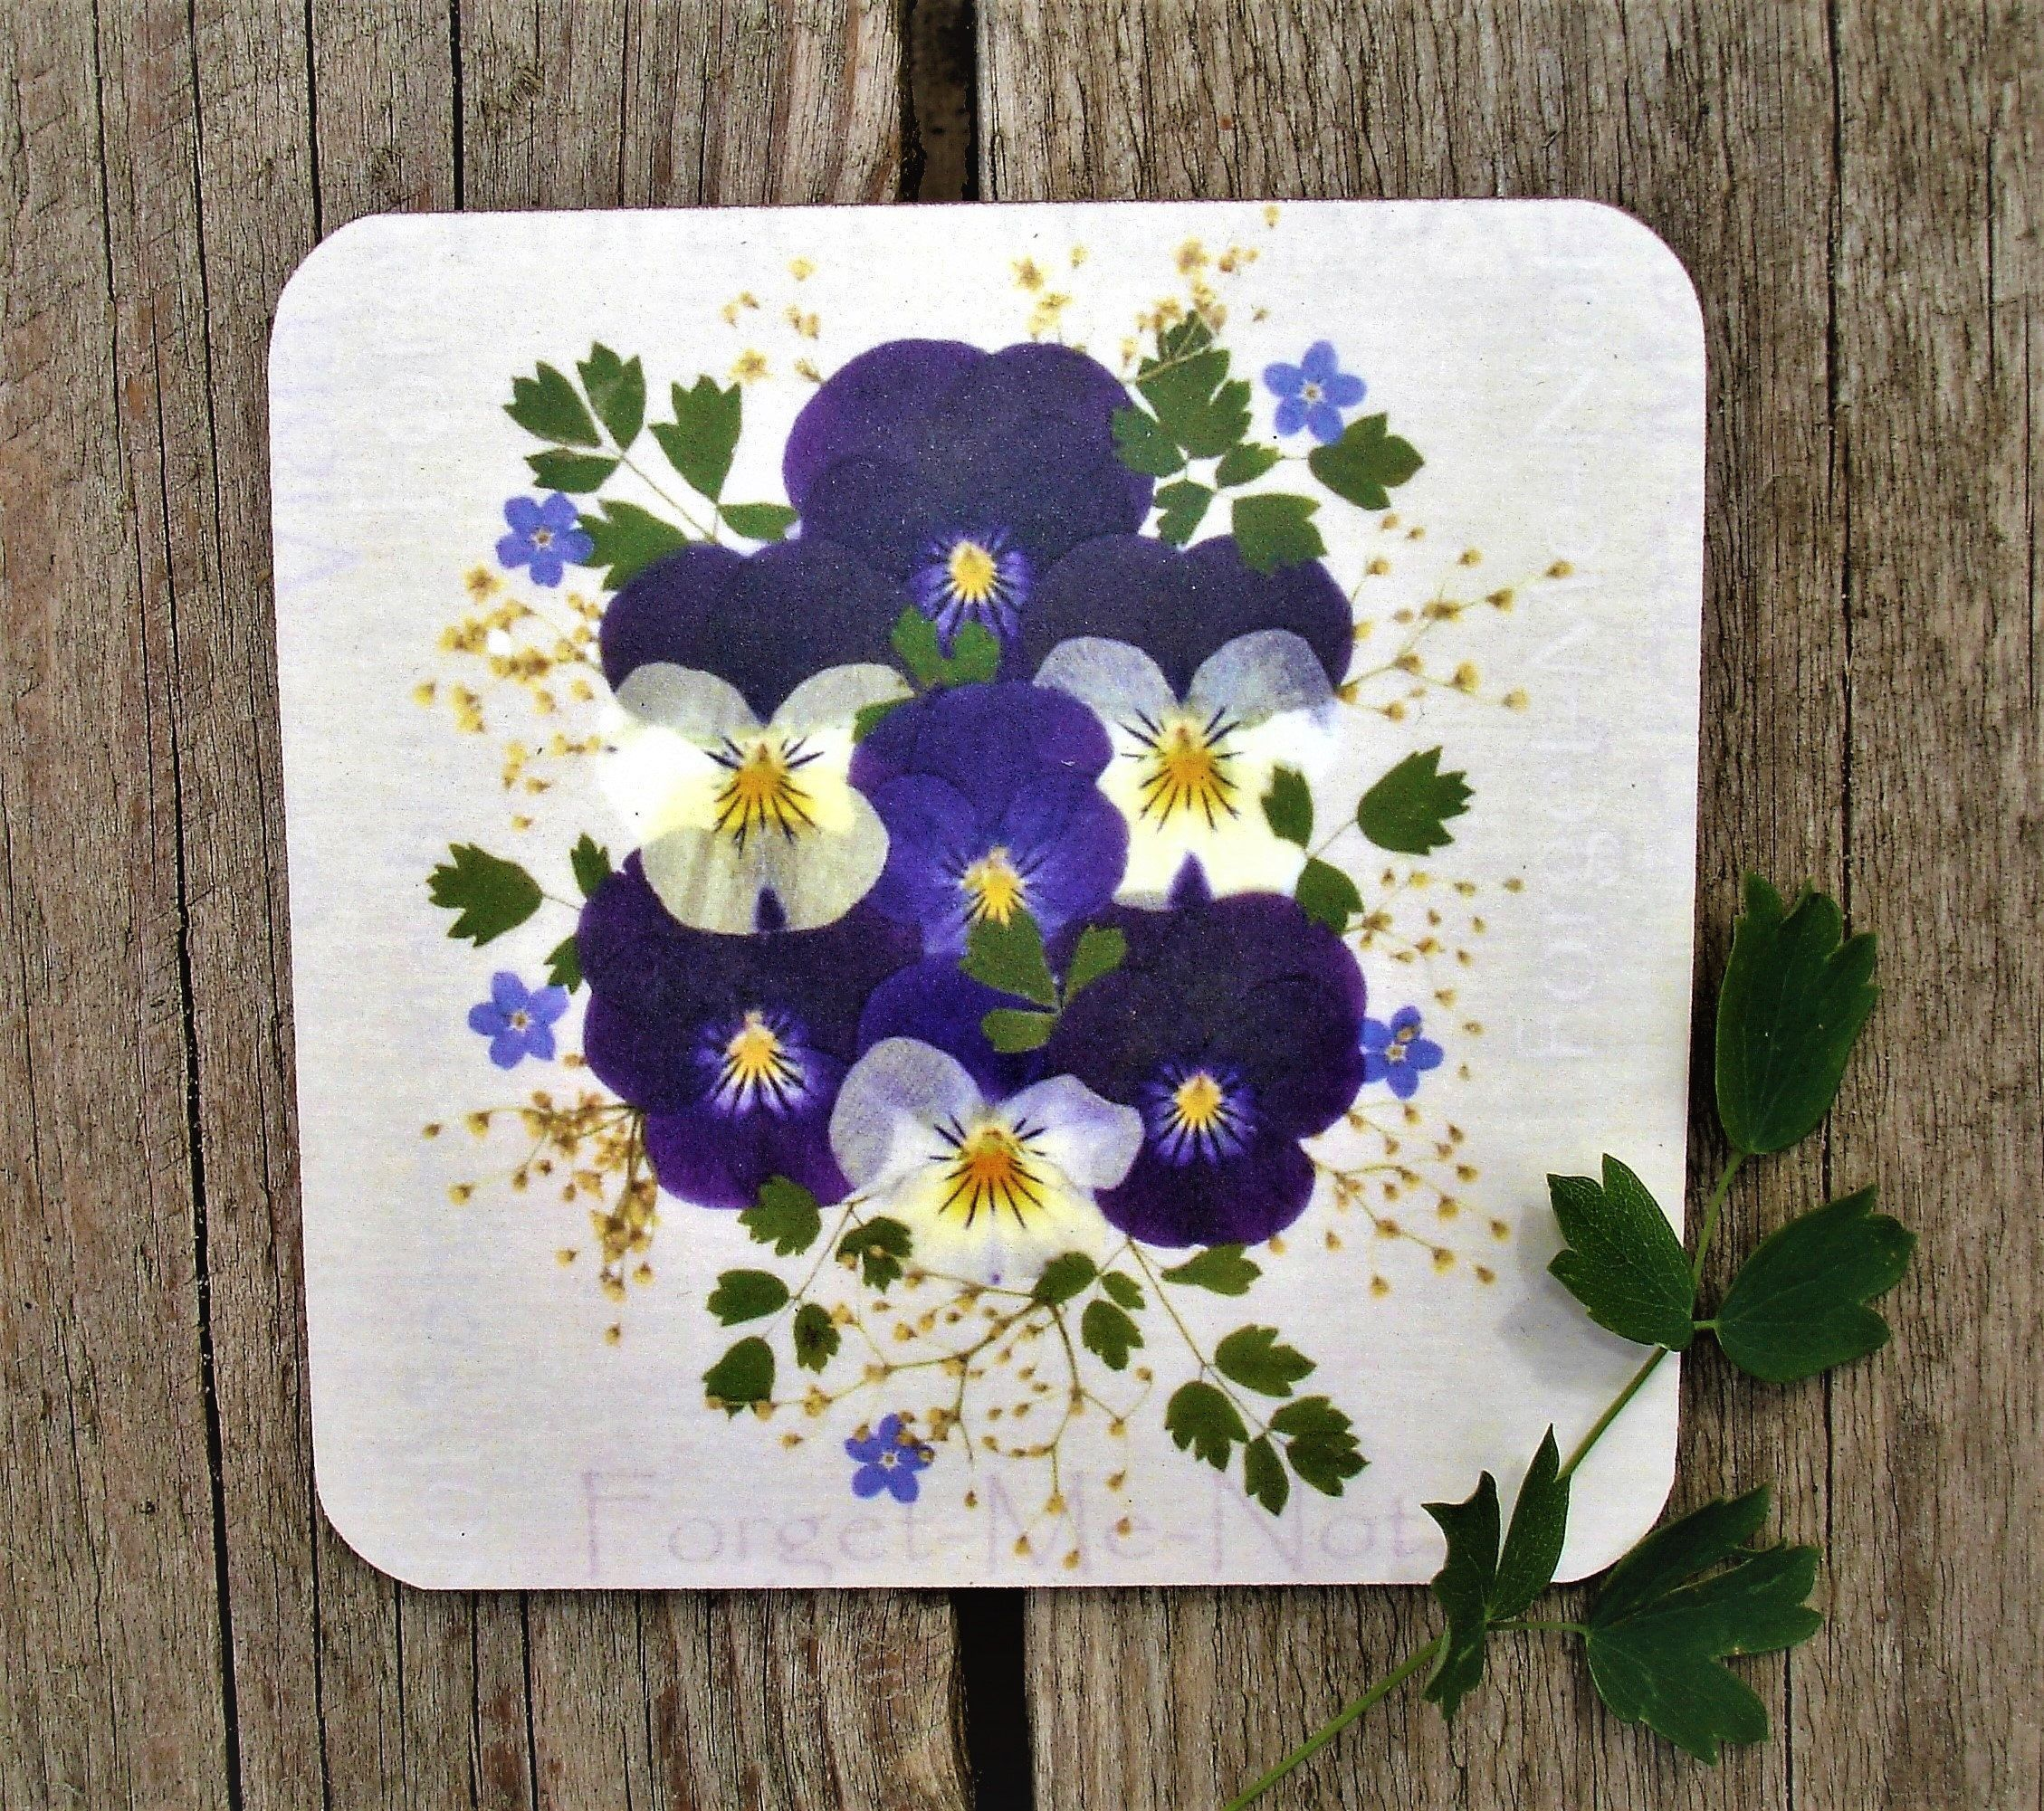 Christmas Gift Ideas, Floral Coaster, Mum Christmas Gift Ideas, Drinks Coaster, ... #secretsantagiftideas